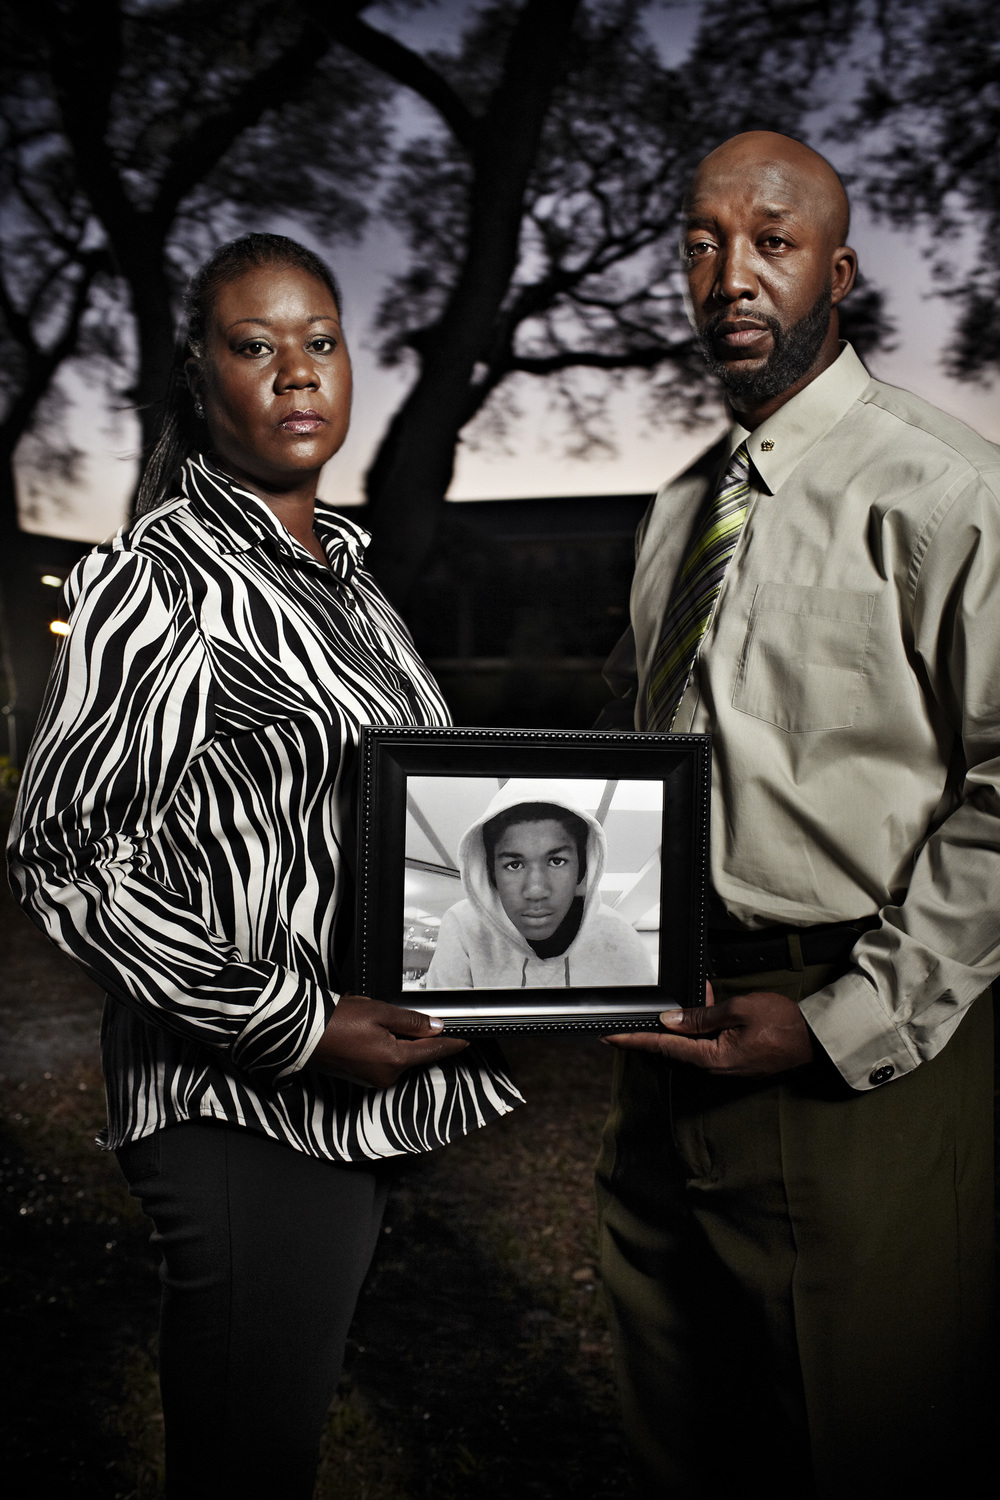 Sybrina Fulton and Tracy Martin - parents of Trayvon Martin - Sanford, FL